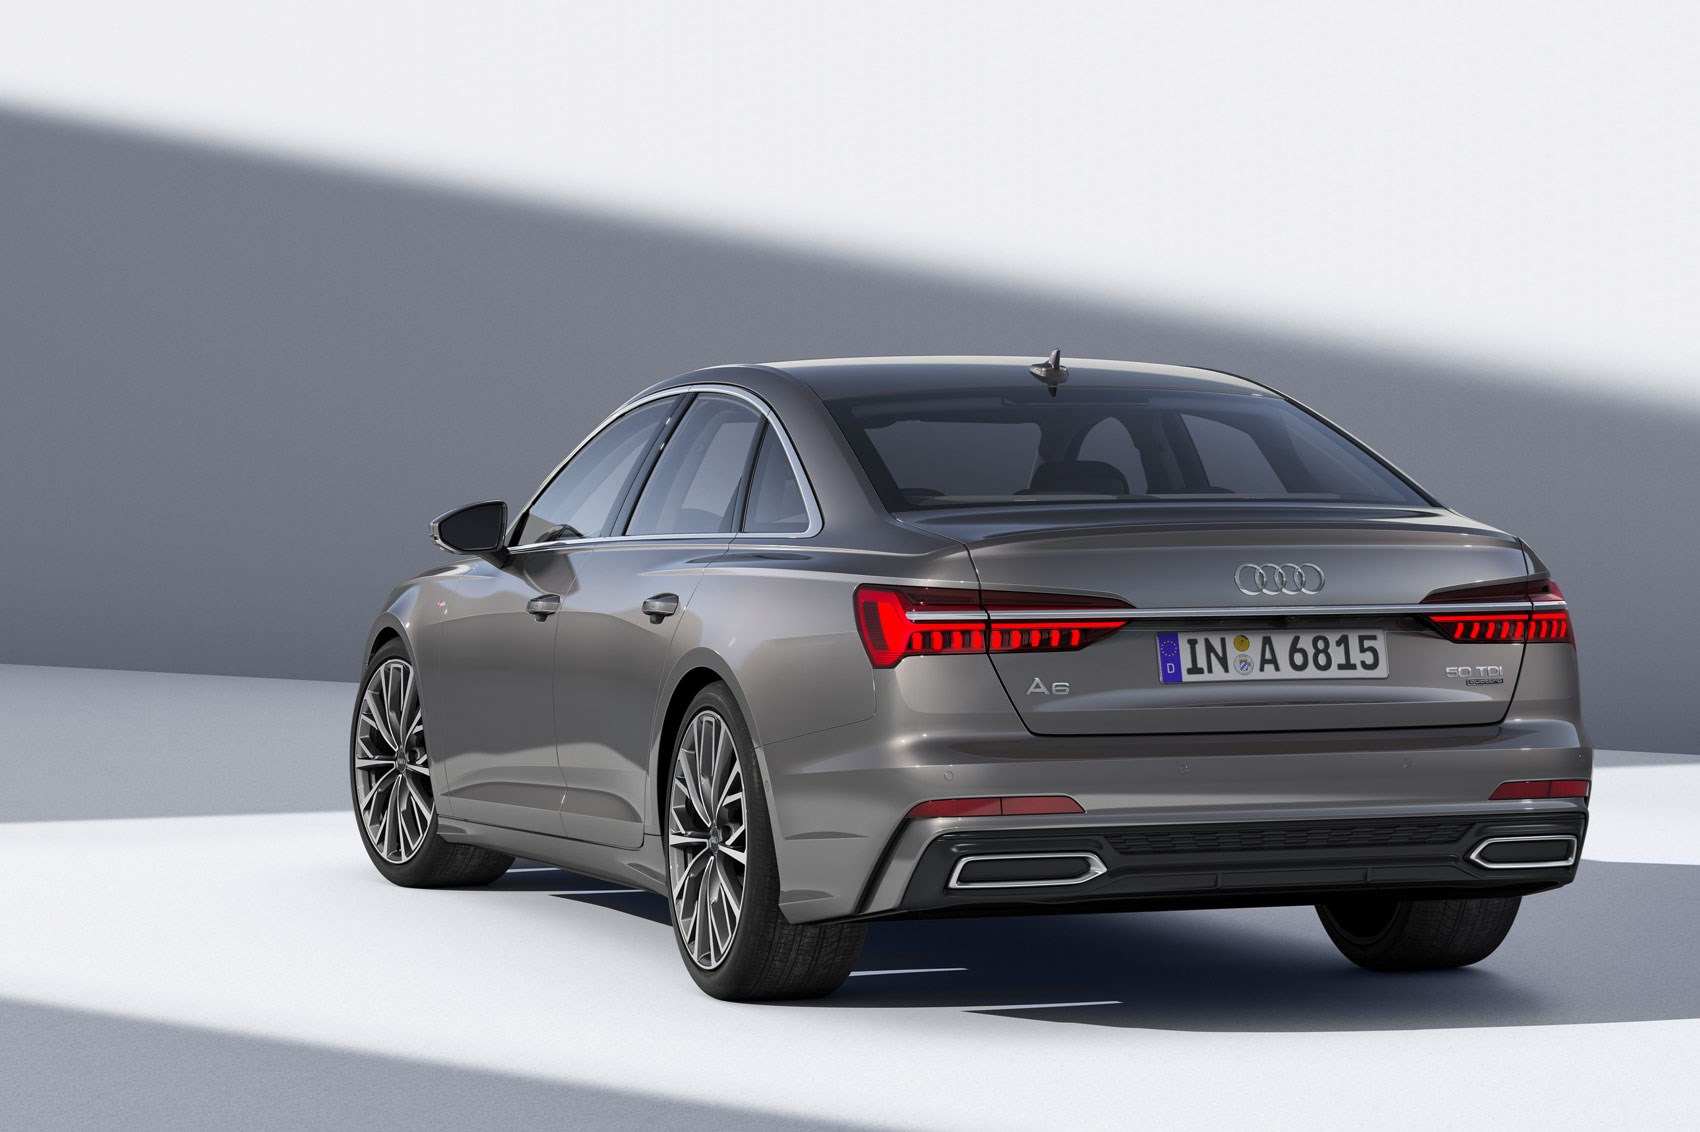 ... Rear of the Audi A6 at the 2018 Geneva motor show